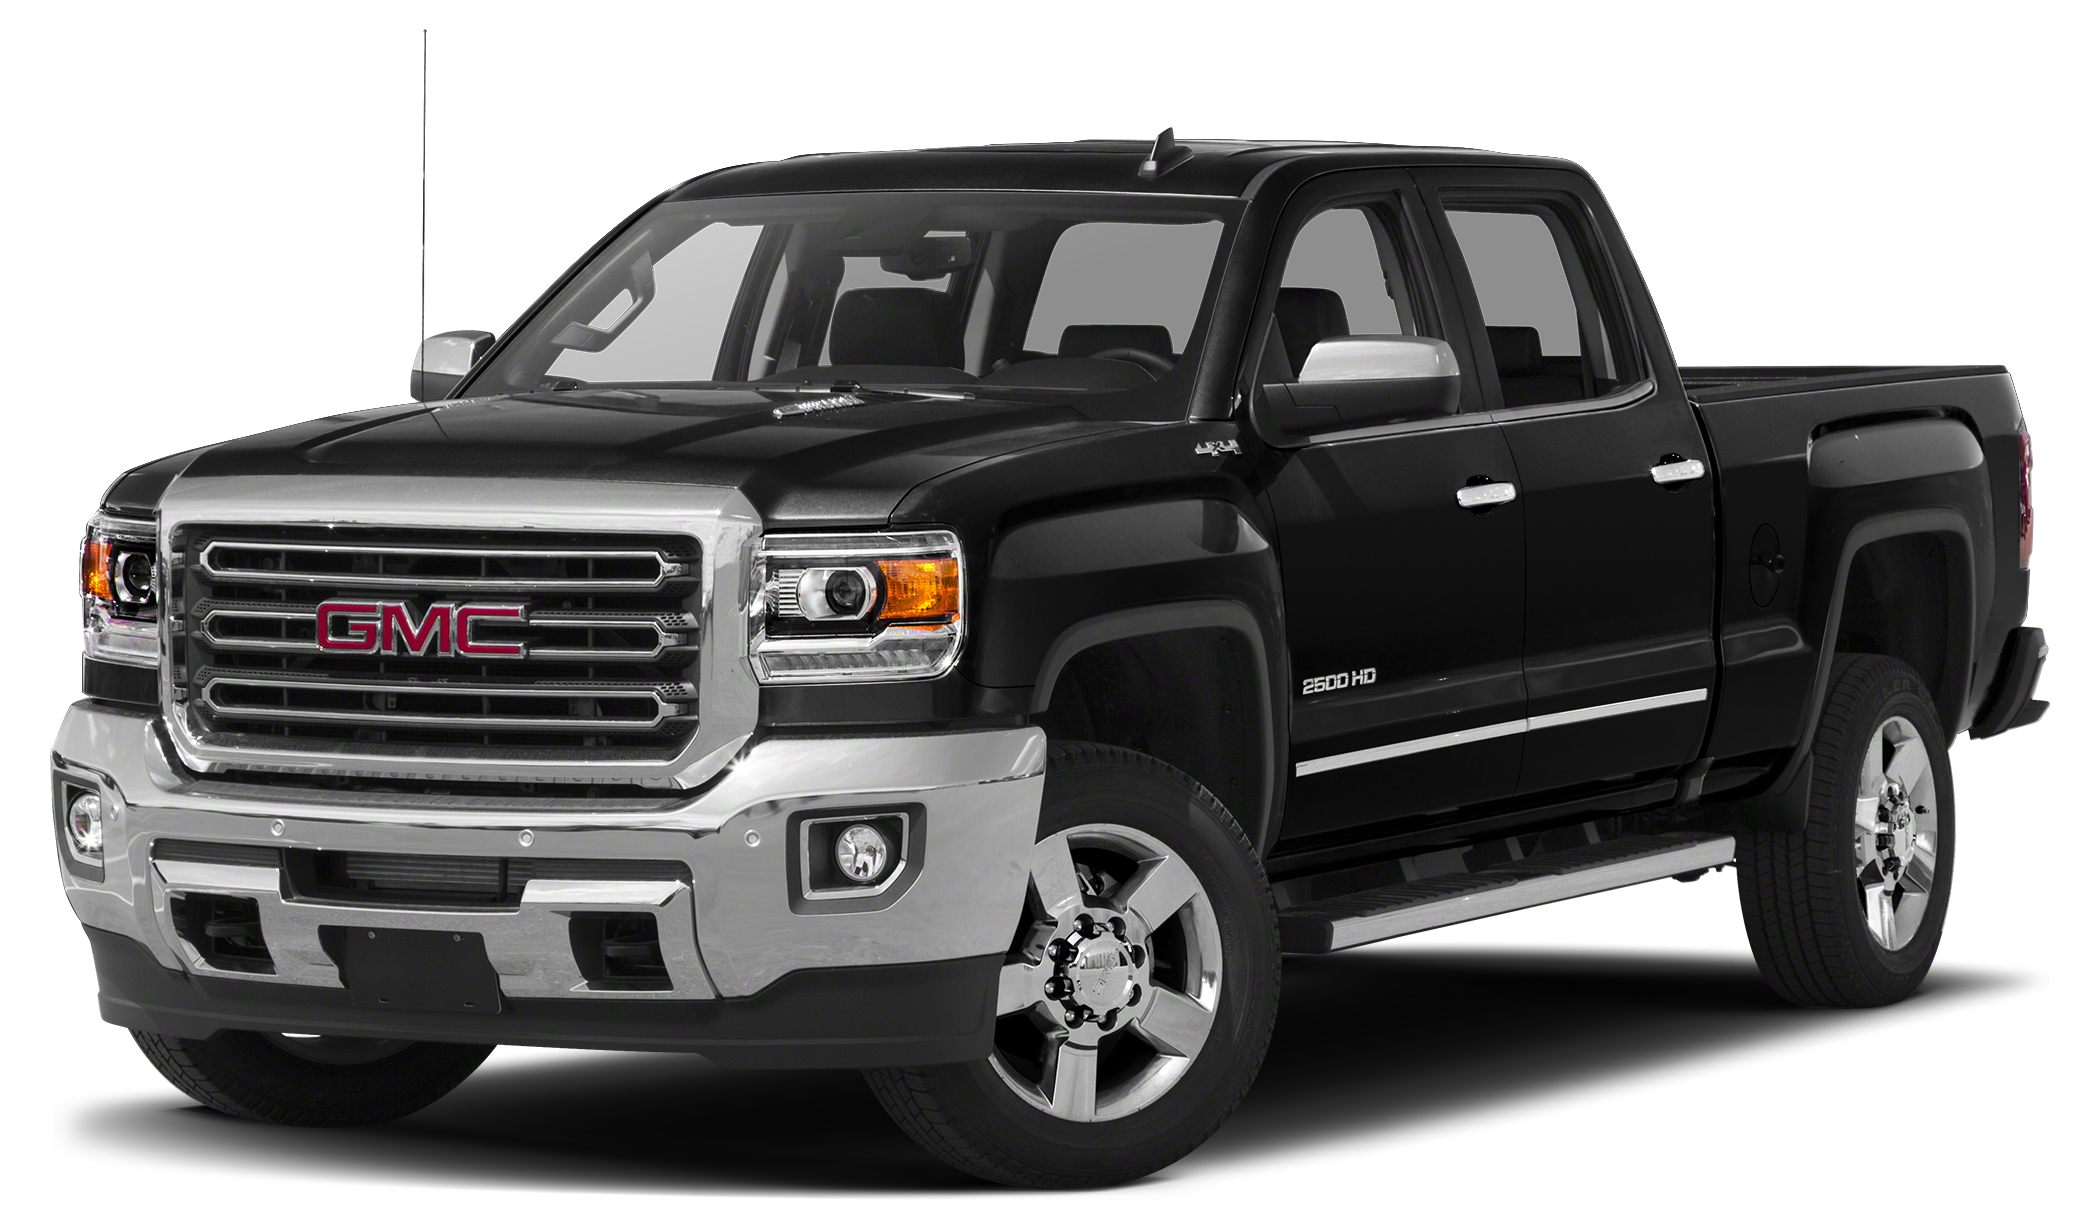 2017 GMC Sierra 2500HD SLT This 2017 GMC Sierra 2500HD SLT features a remote starter braking assi